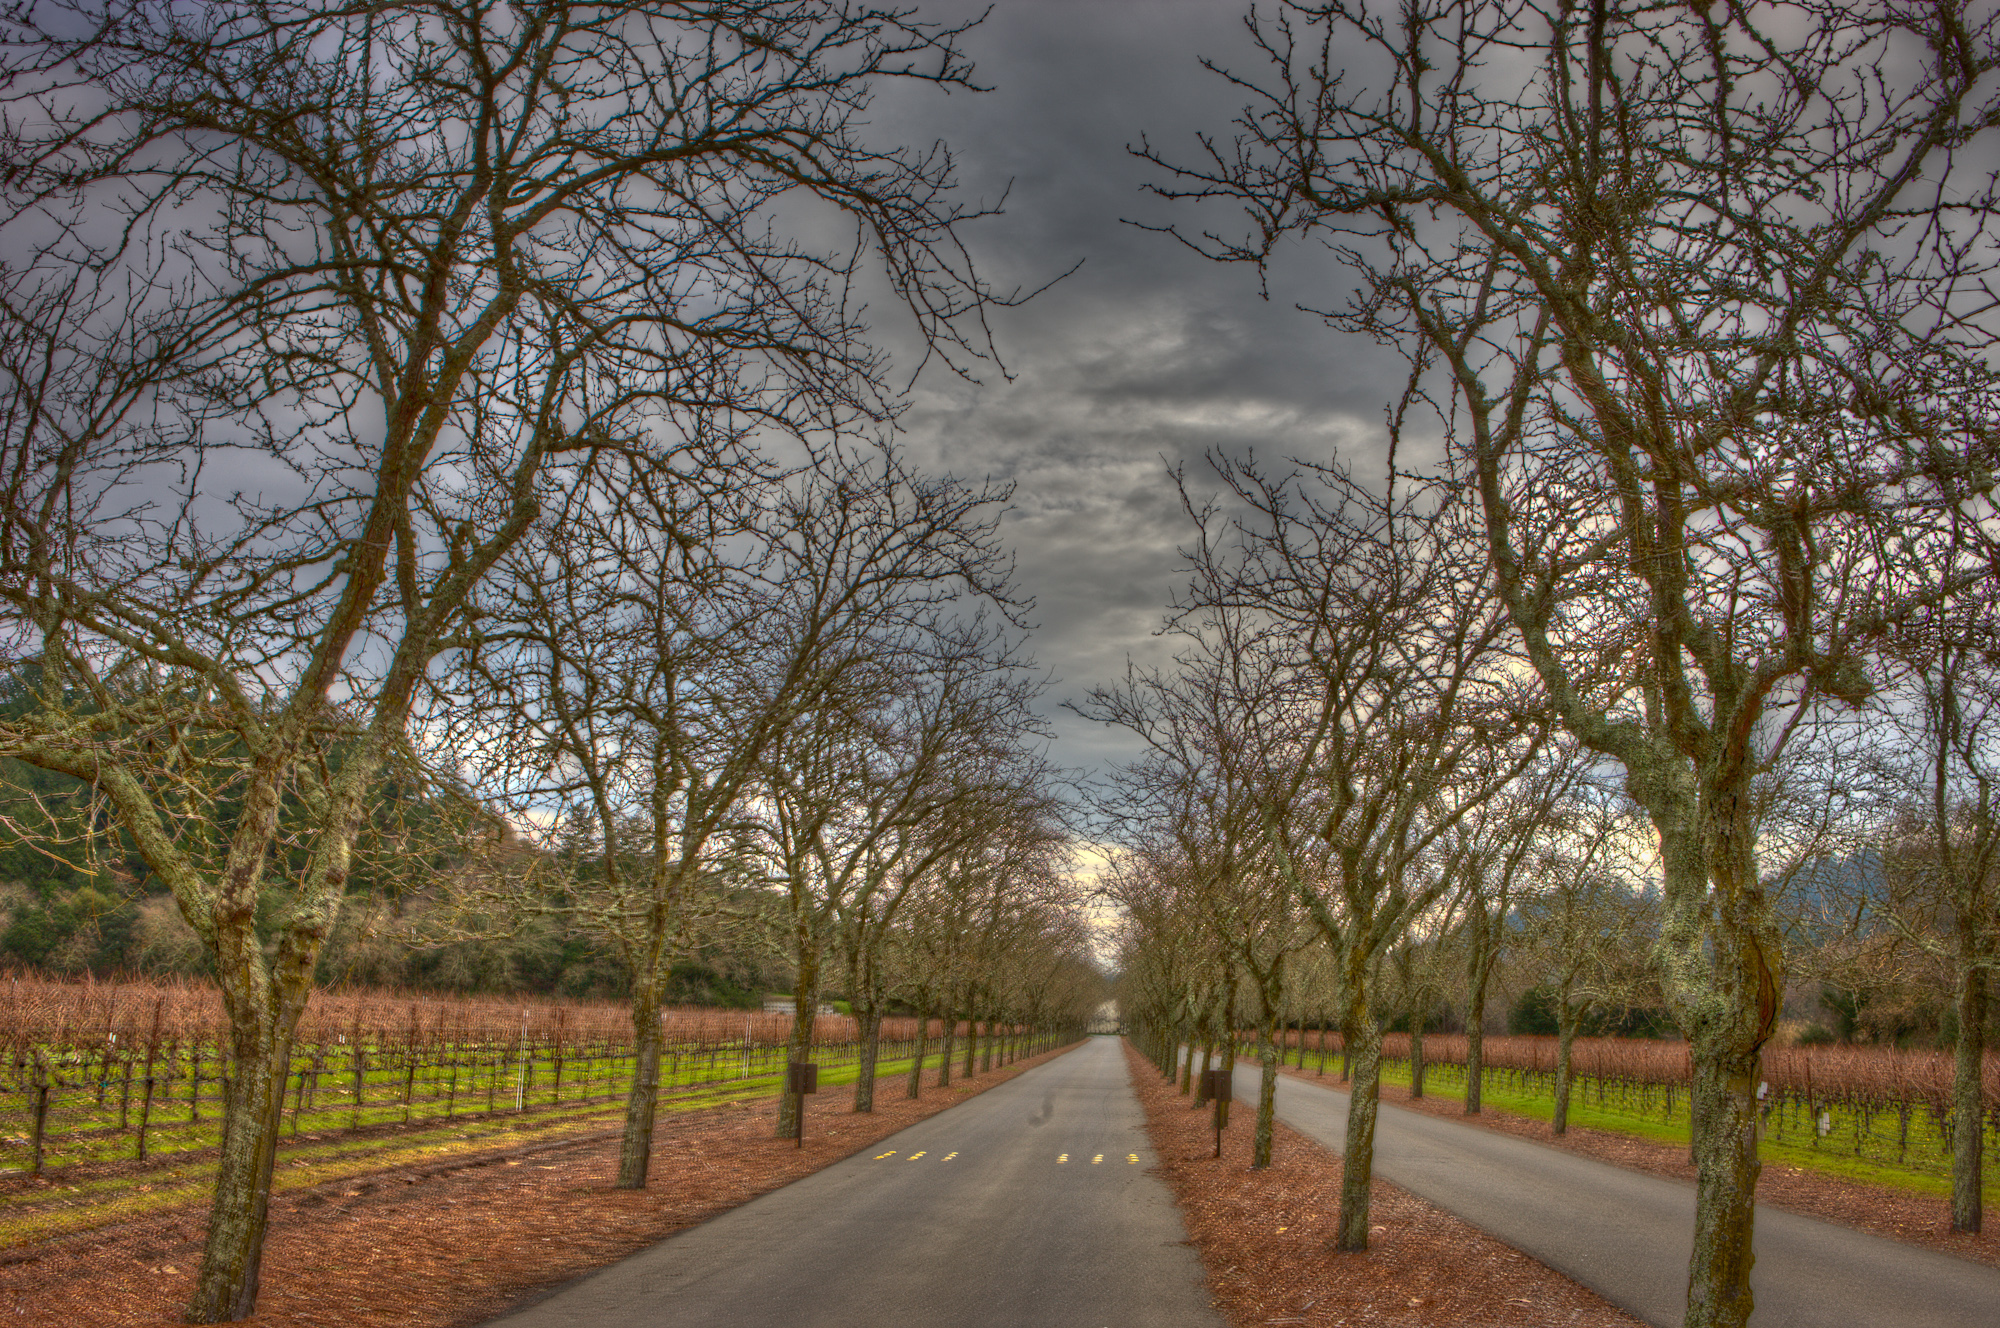 The entrance to Sterling wine vineyards is spectacular.  Here are two versions of the same images.  The first is a High Dynamic Range on a cloudy day   Second is a Black and white version of same.